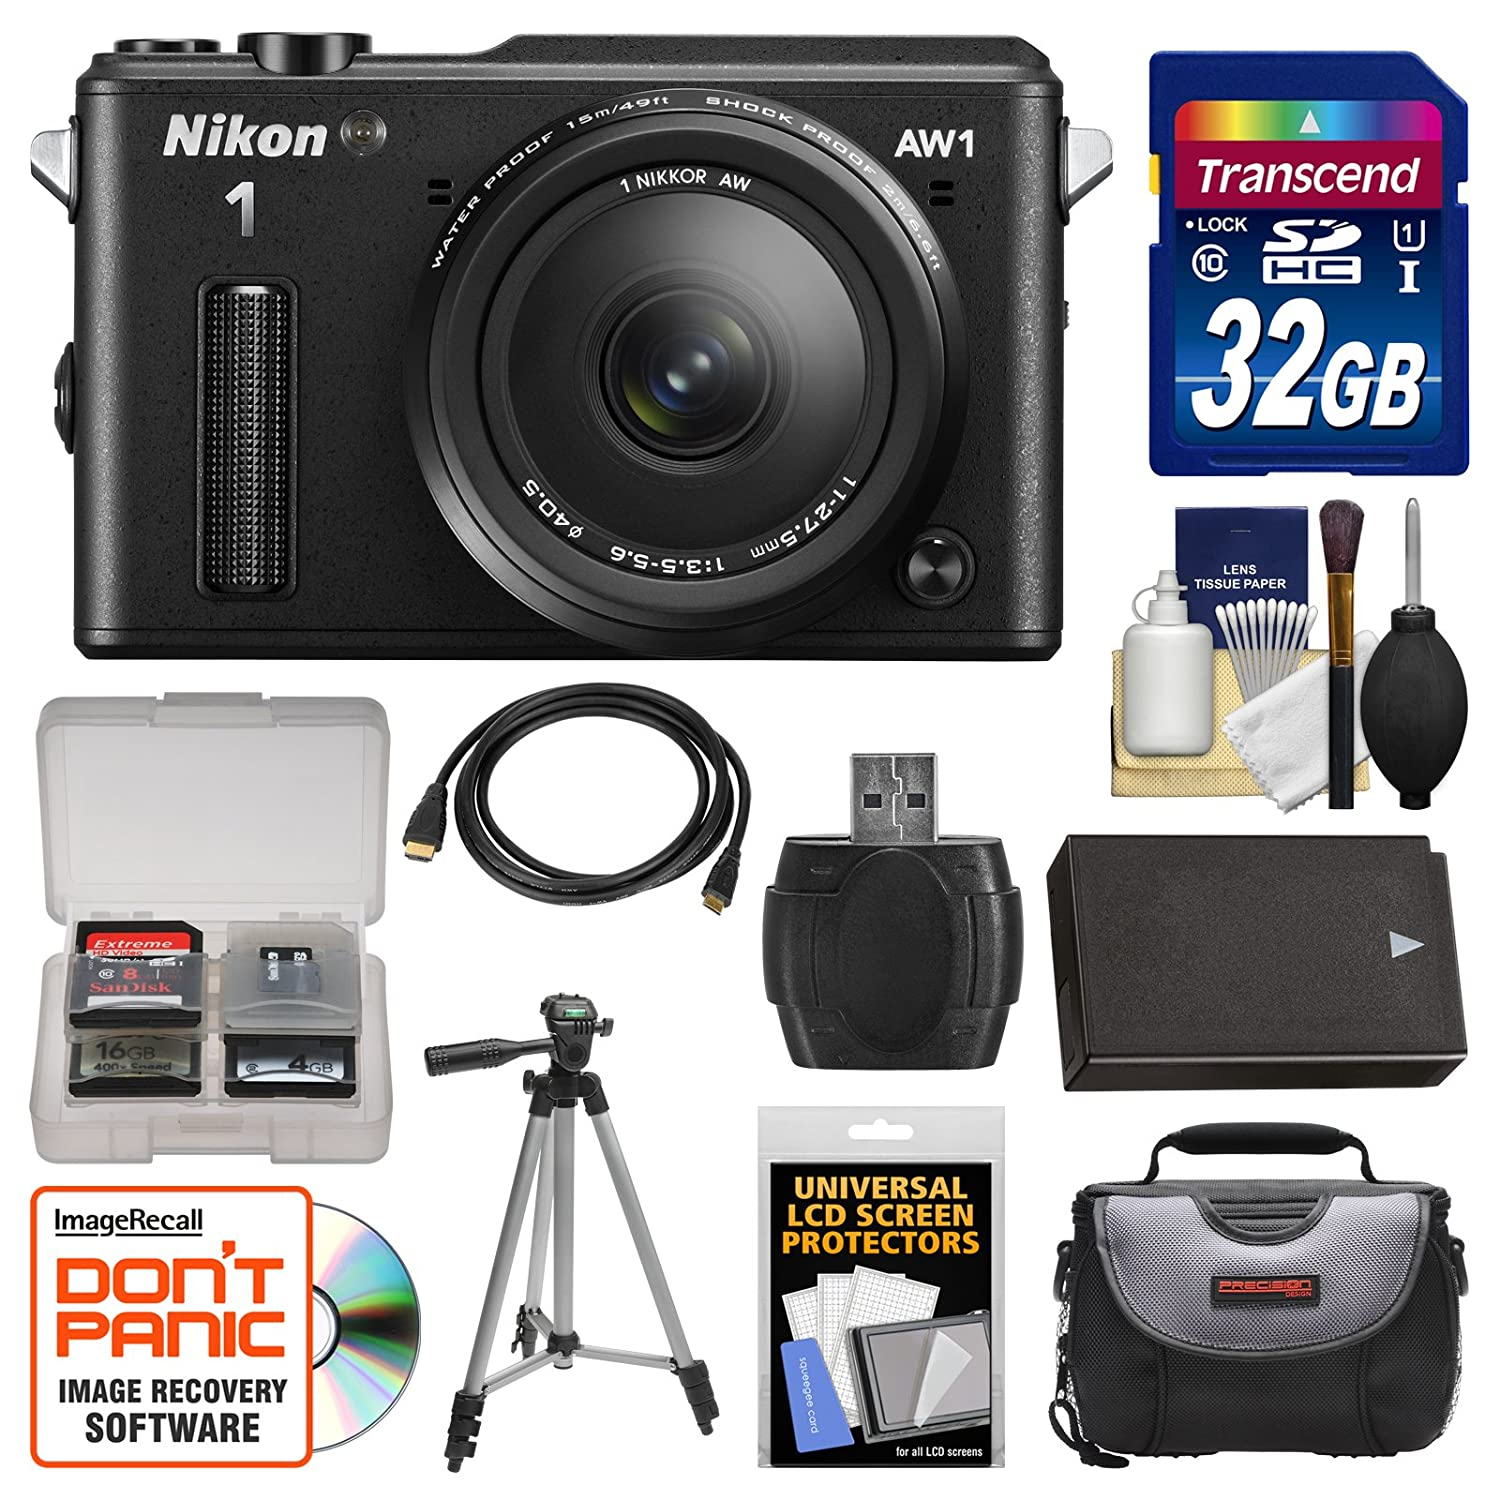 Nikon 1 AW1 Shock & Waterproof Digital Camera Body with AW 11-27.5mm Lens (Black) with 32GB Card + Case + Battery + Tripod Kit